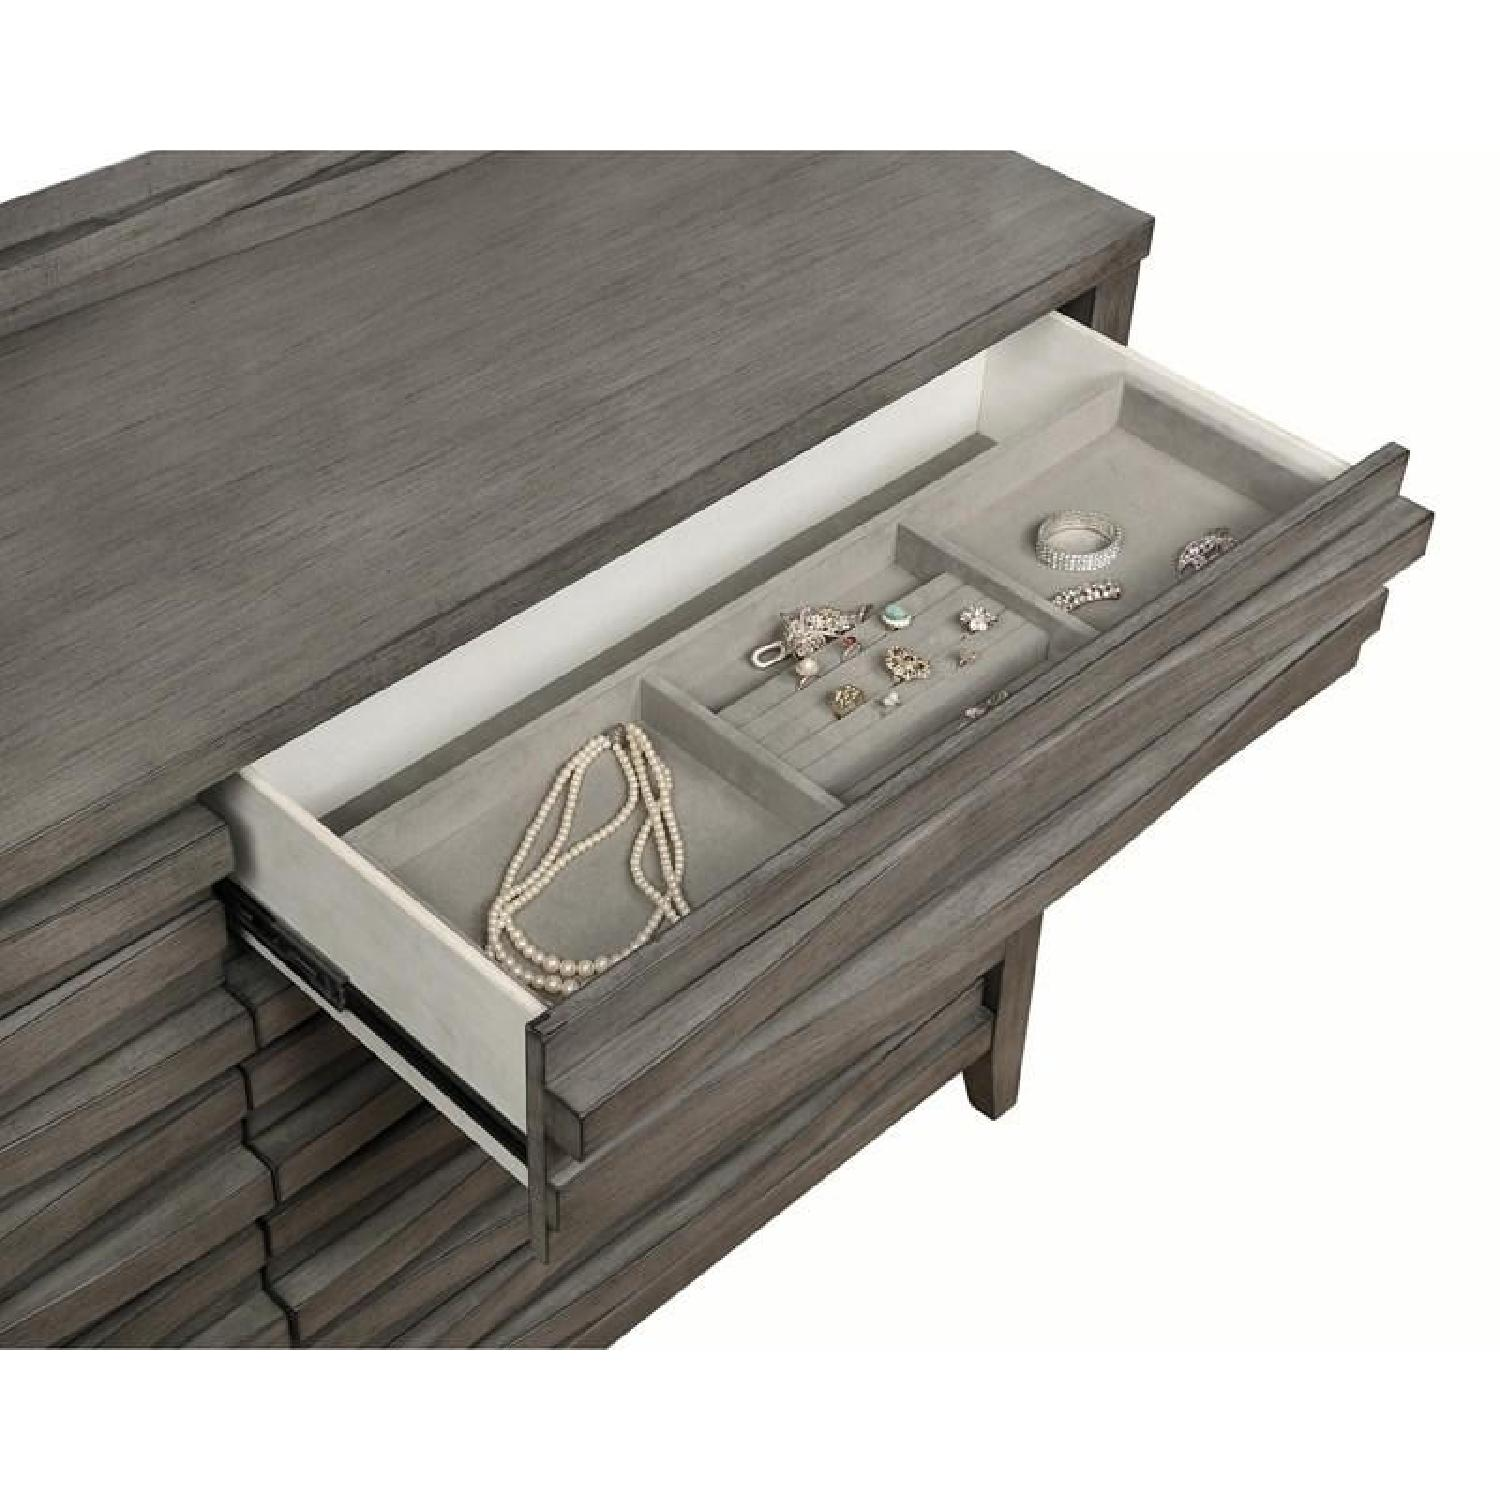 Queen Bed in Dark Taupe w/ 2 Storage Drawers - image-10